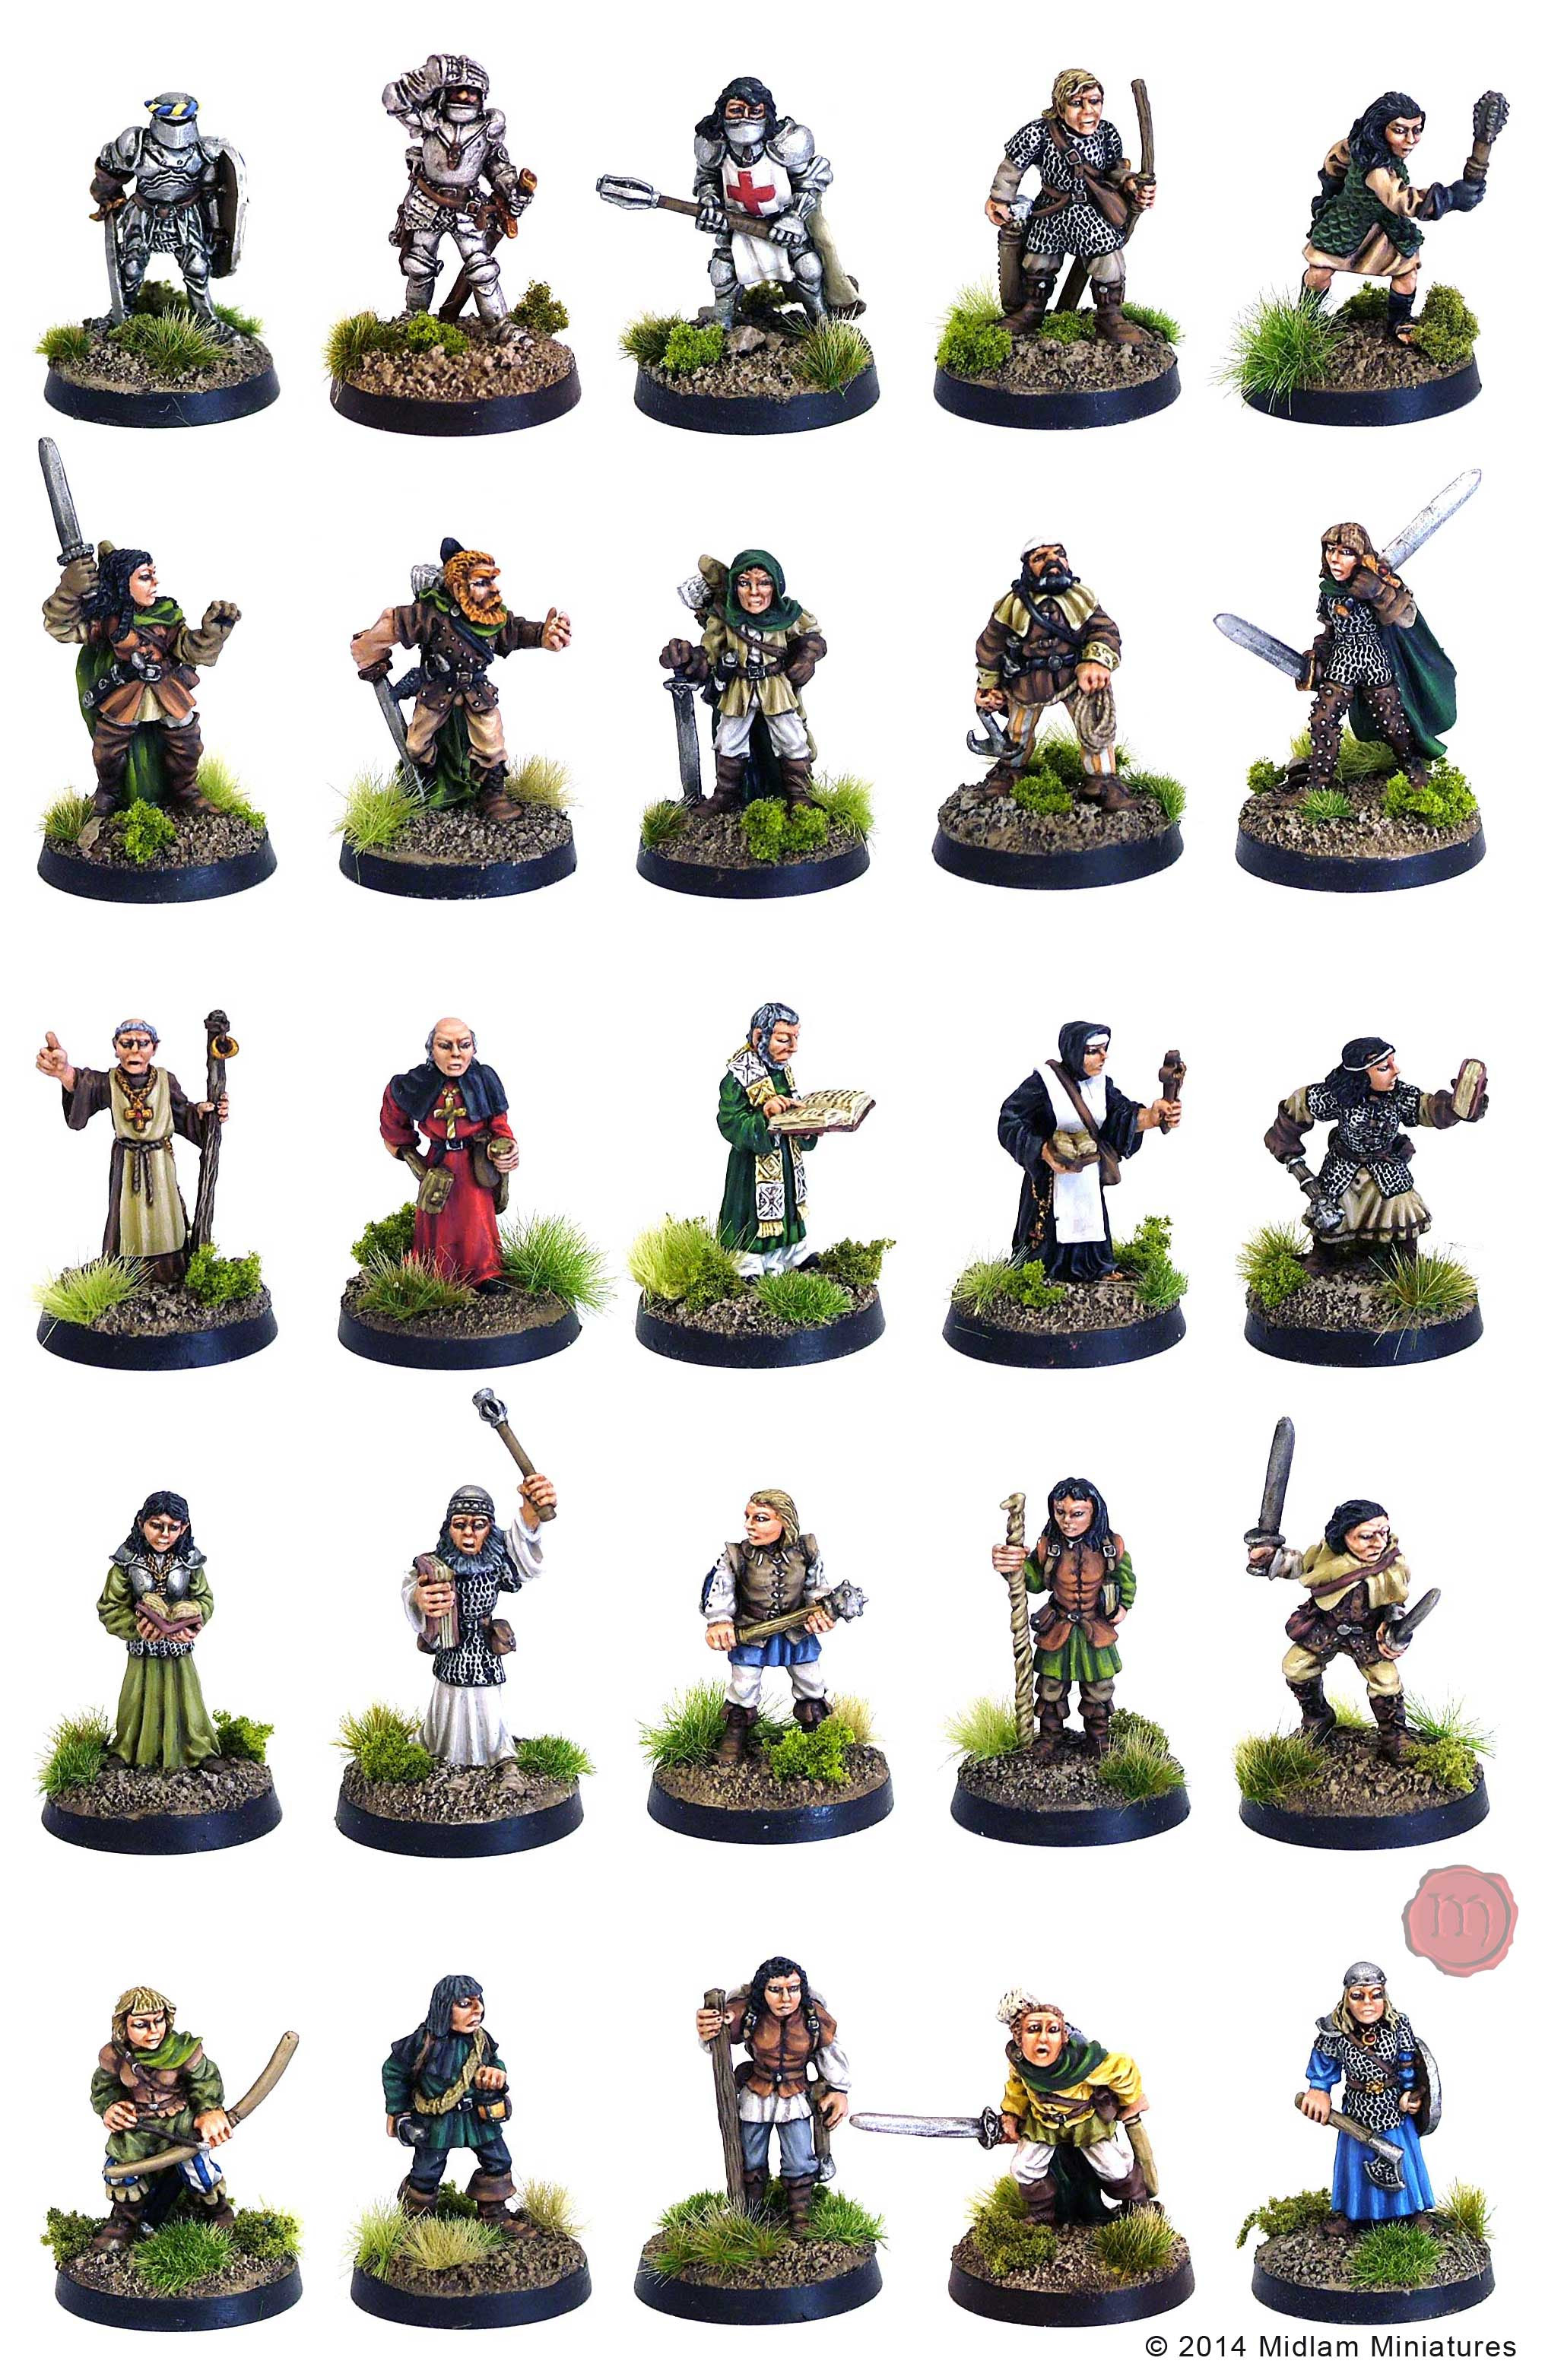 http://www.midlamminiatures.co.uk/user/products/large/Painted-Figures-29-09-14.jpg